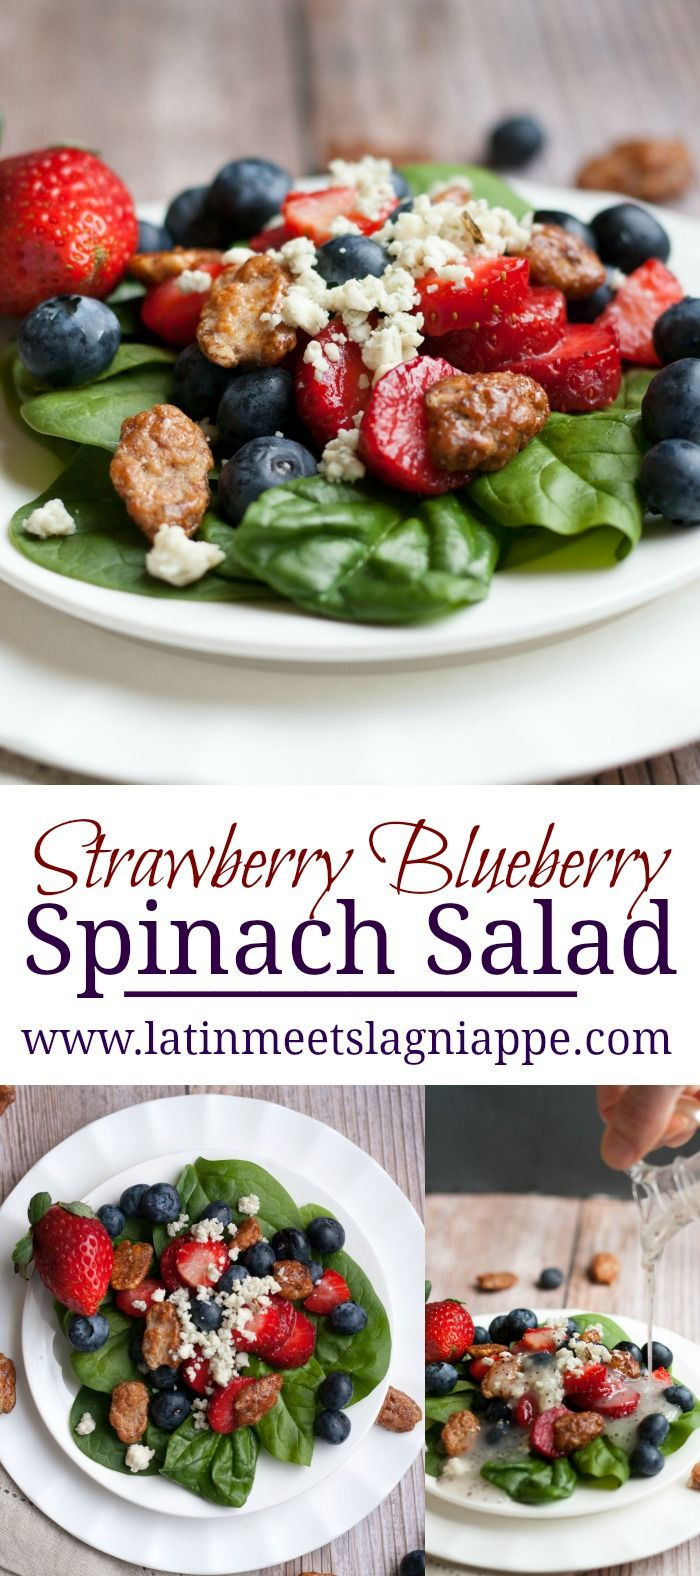 This tasty Strawberry Blueberry Spinach Salad is delicious,  topped with seasonal berries and a bit of Gorgonzola. It's perfect for lunch or dinner!